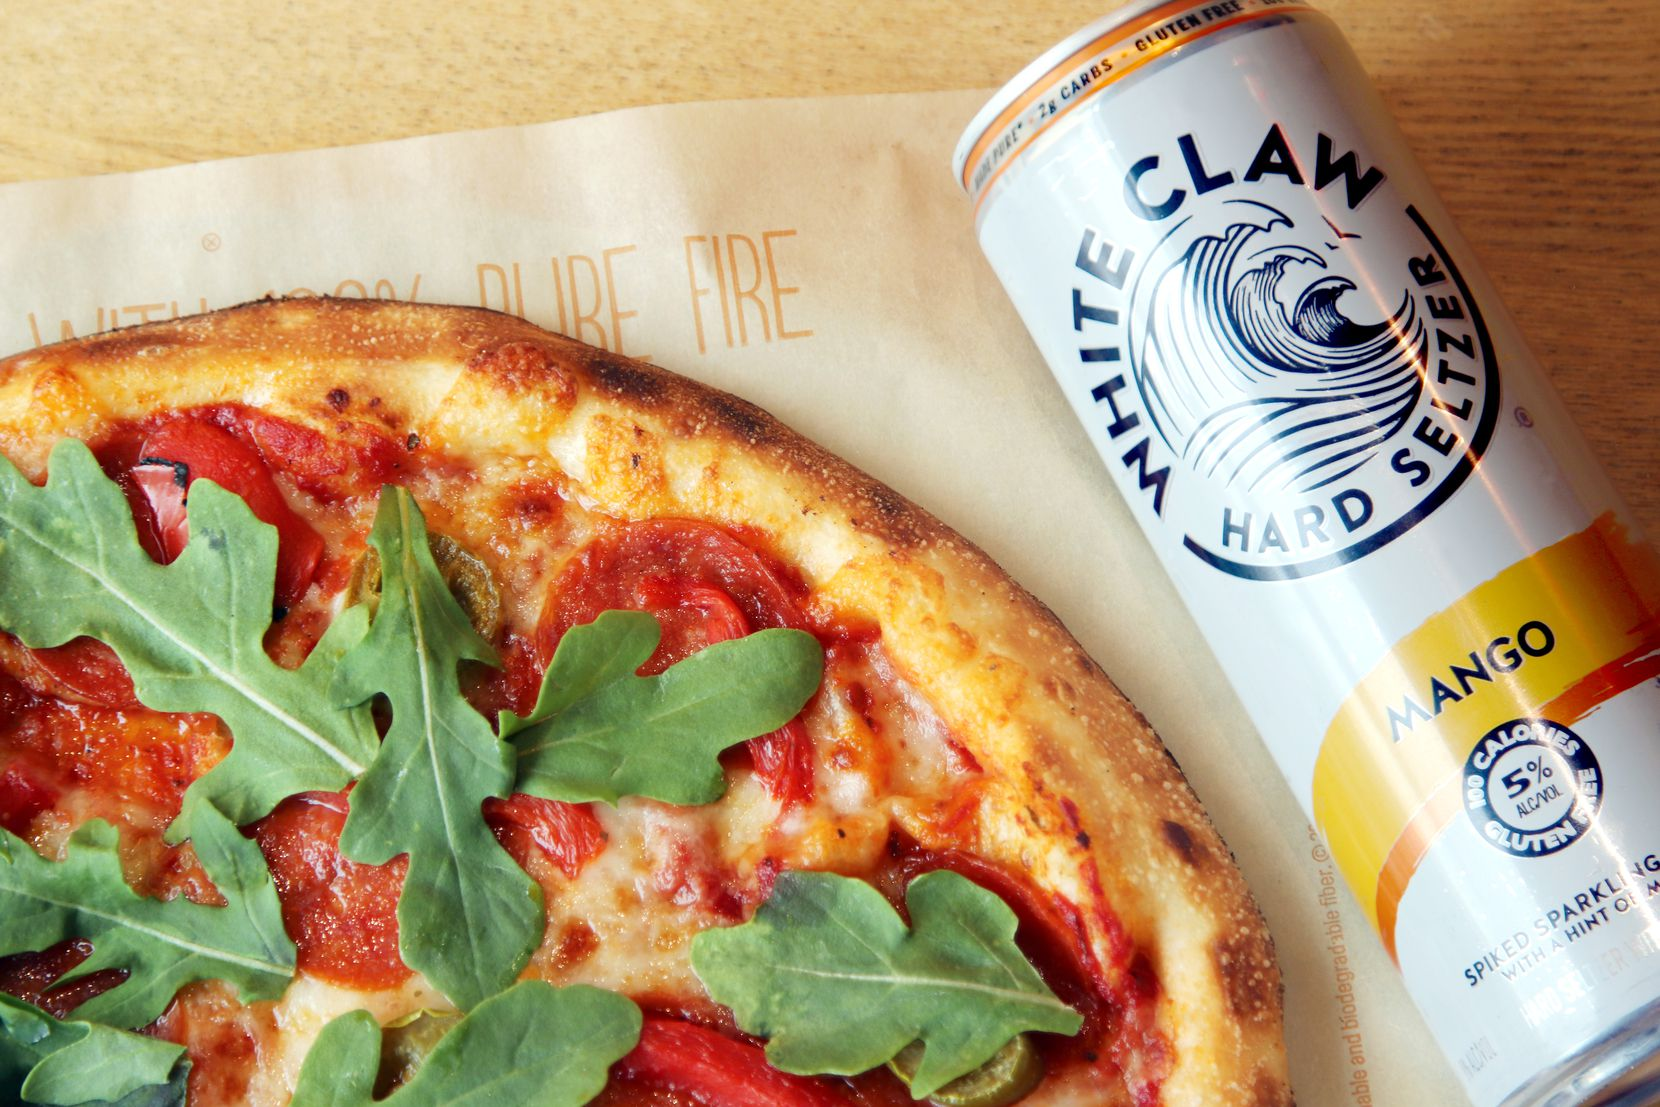 Blaze Fast Fire'd Pizza is selling a pizza with White Claw infused in its crust on June 18, 2020. Most of the restaurants selling the limited-time-only pizzas are in California.